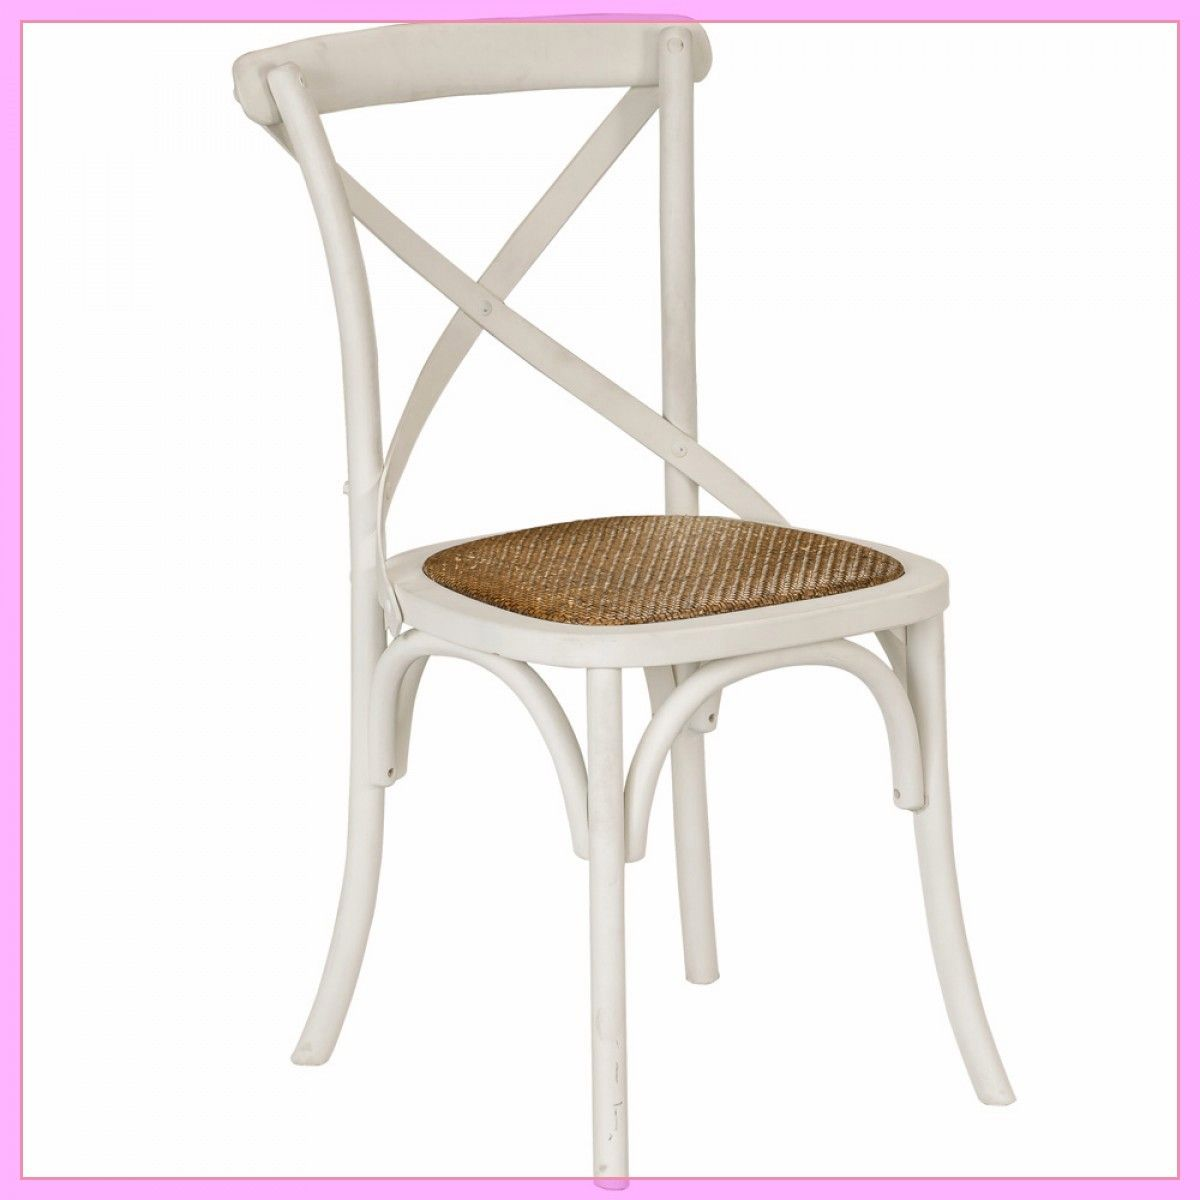 129 Reference Of Cross Chair Old White In 2020 Crossback Chairs Dining Chairs White Dining Chairs